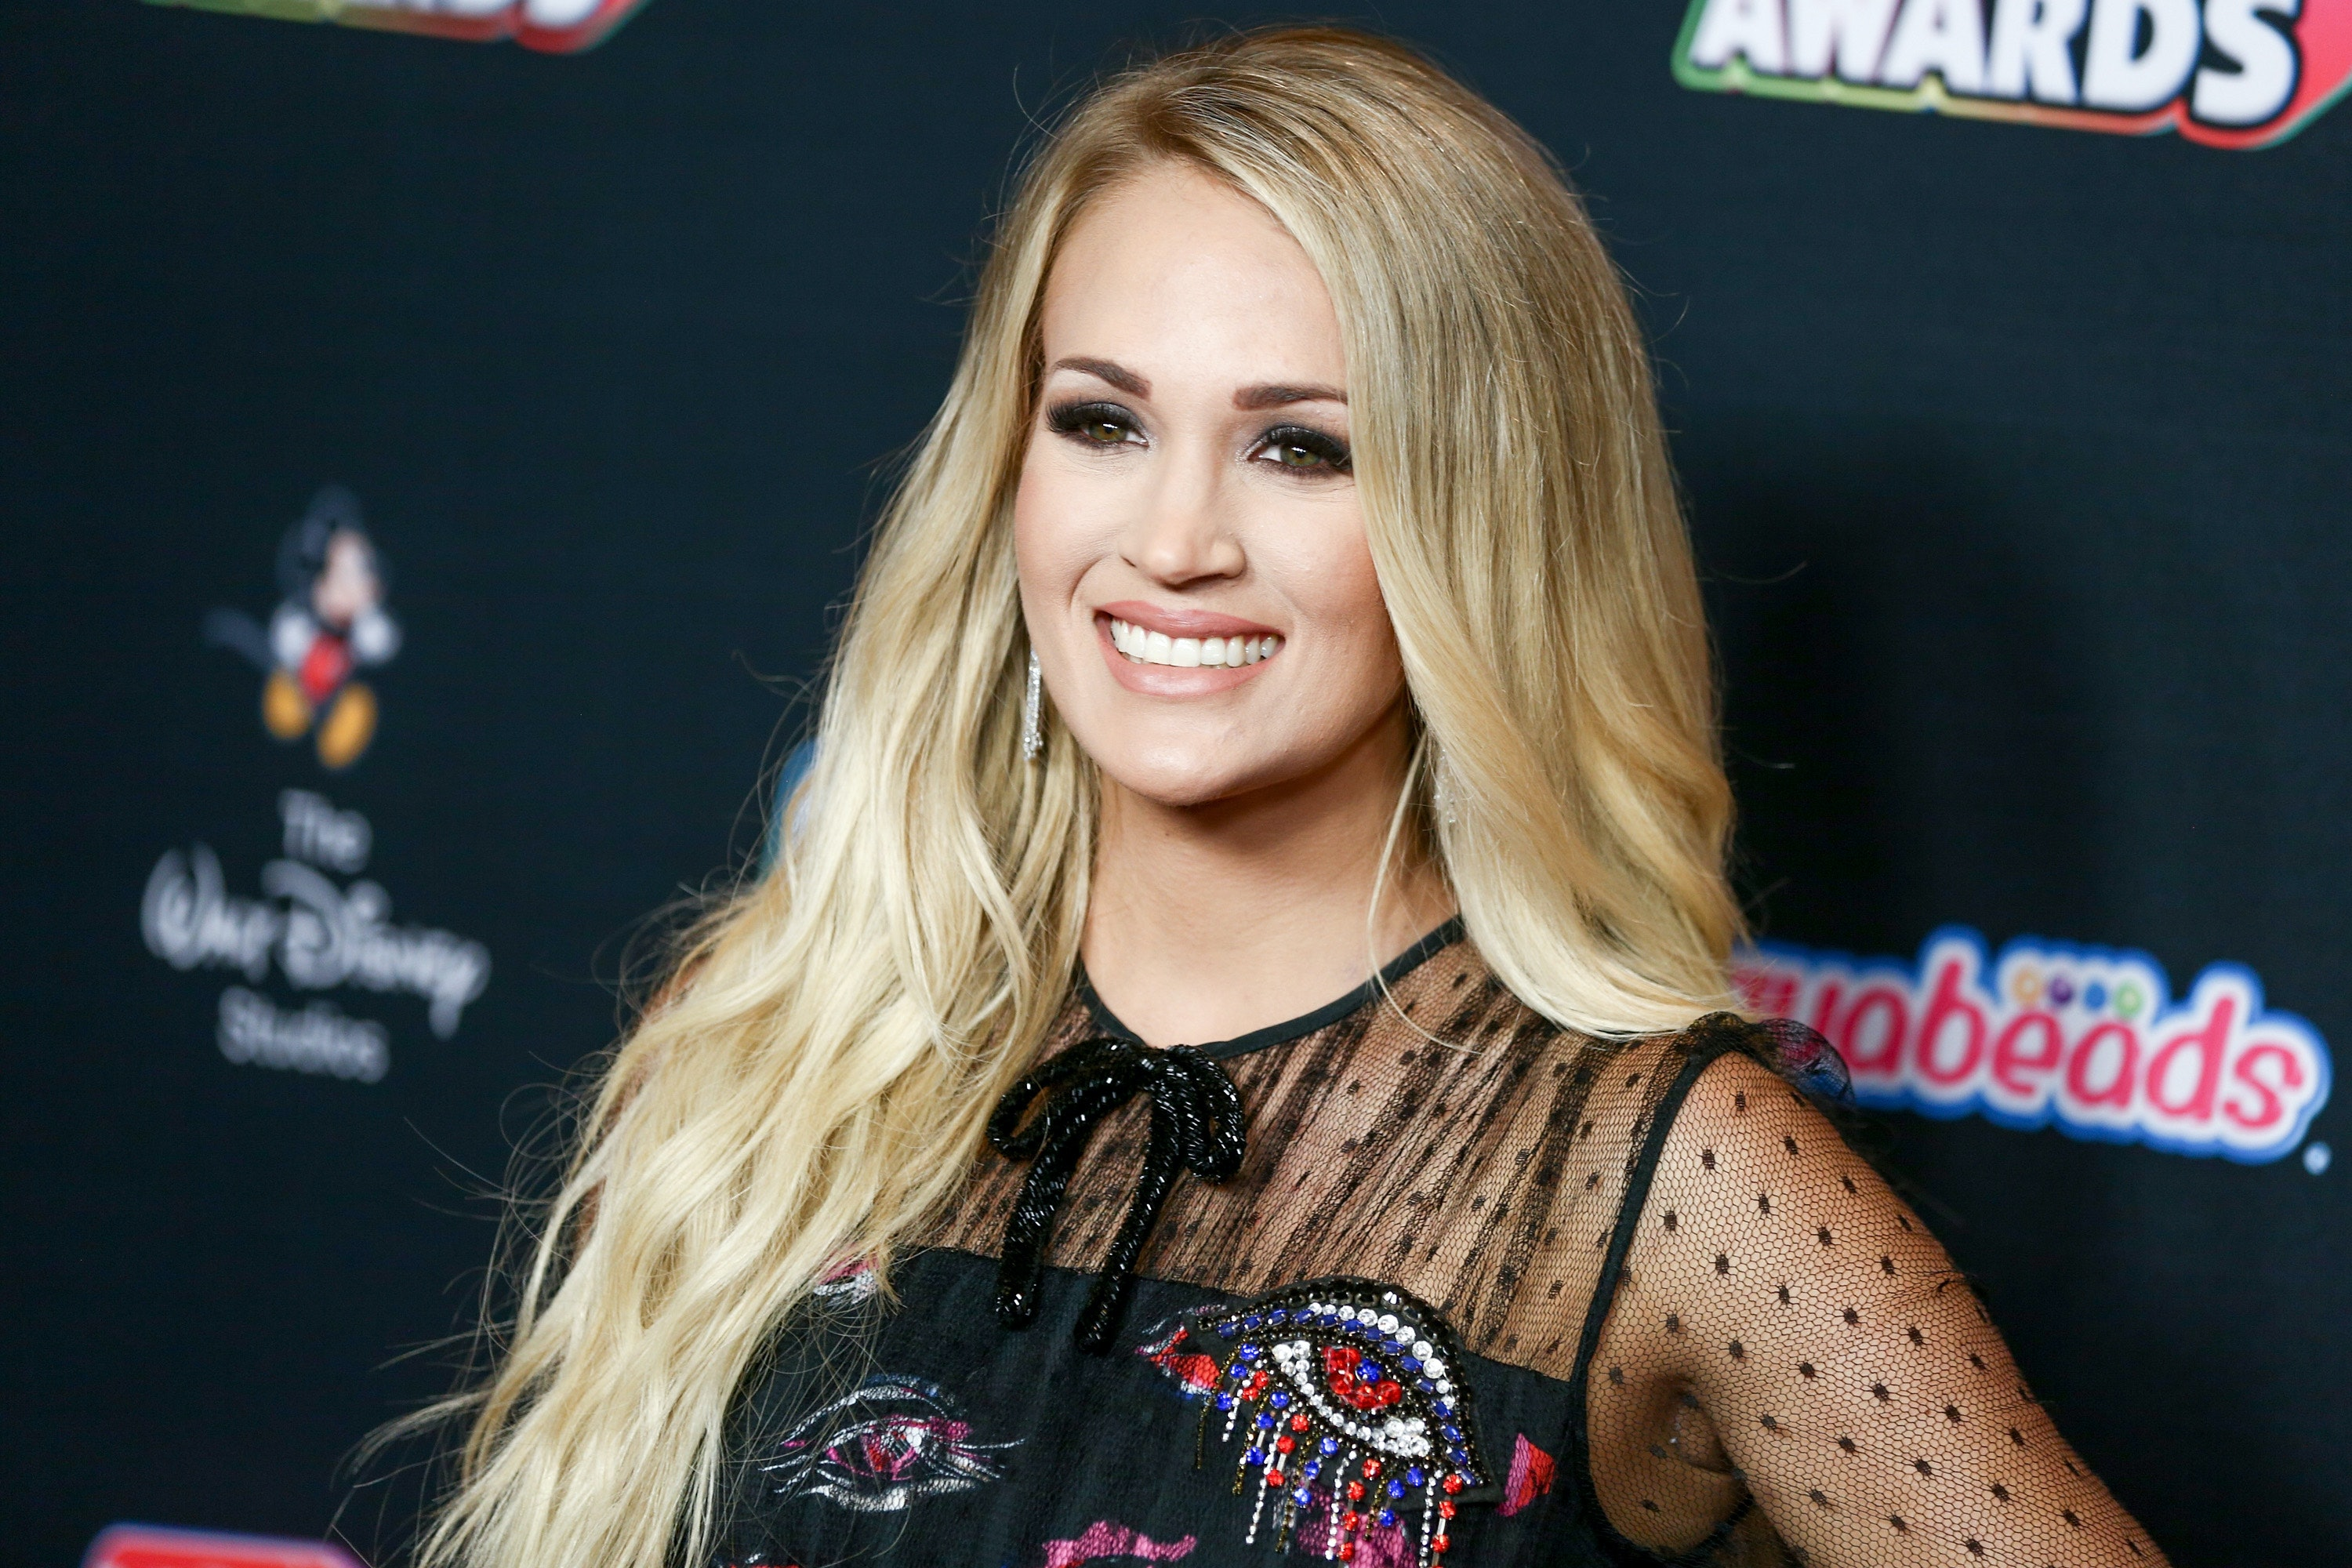 Carrie Underwood Just Announced Shes Pregnant With Her Second Child recommend